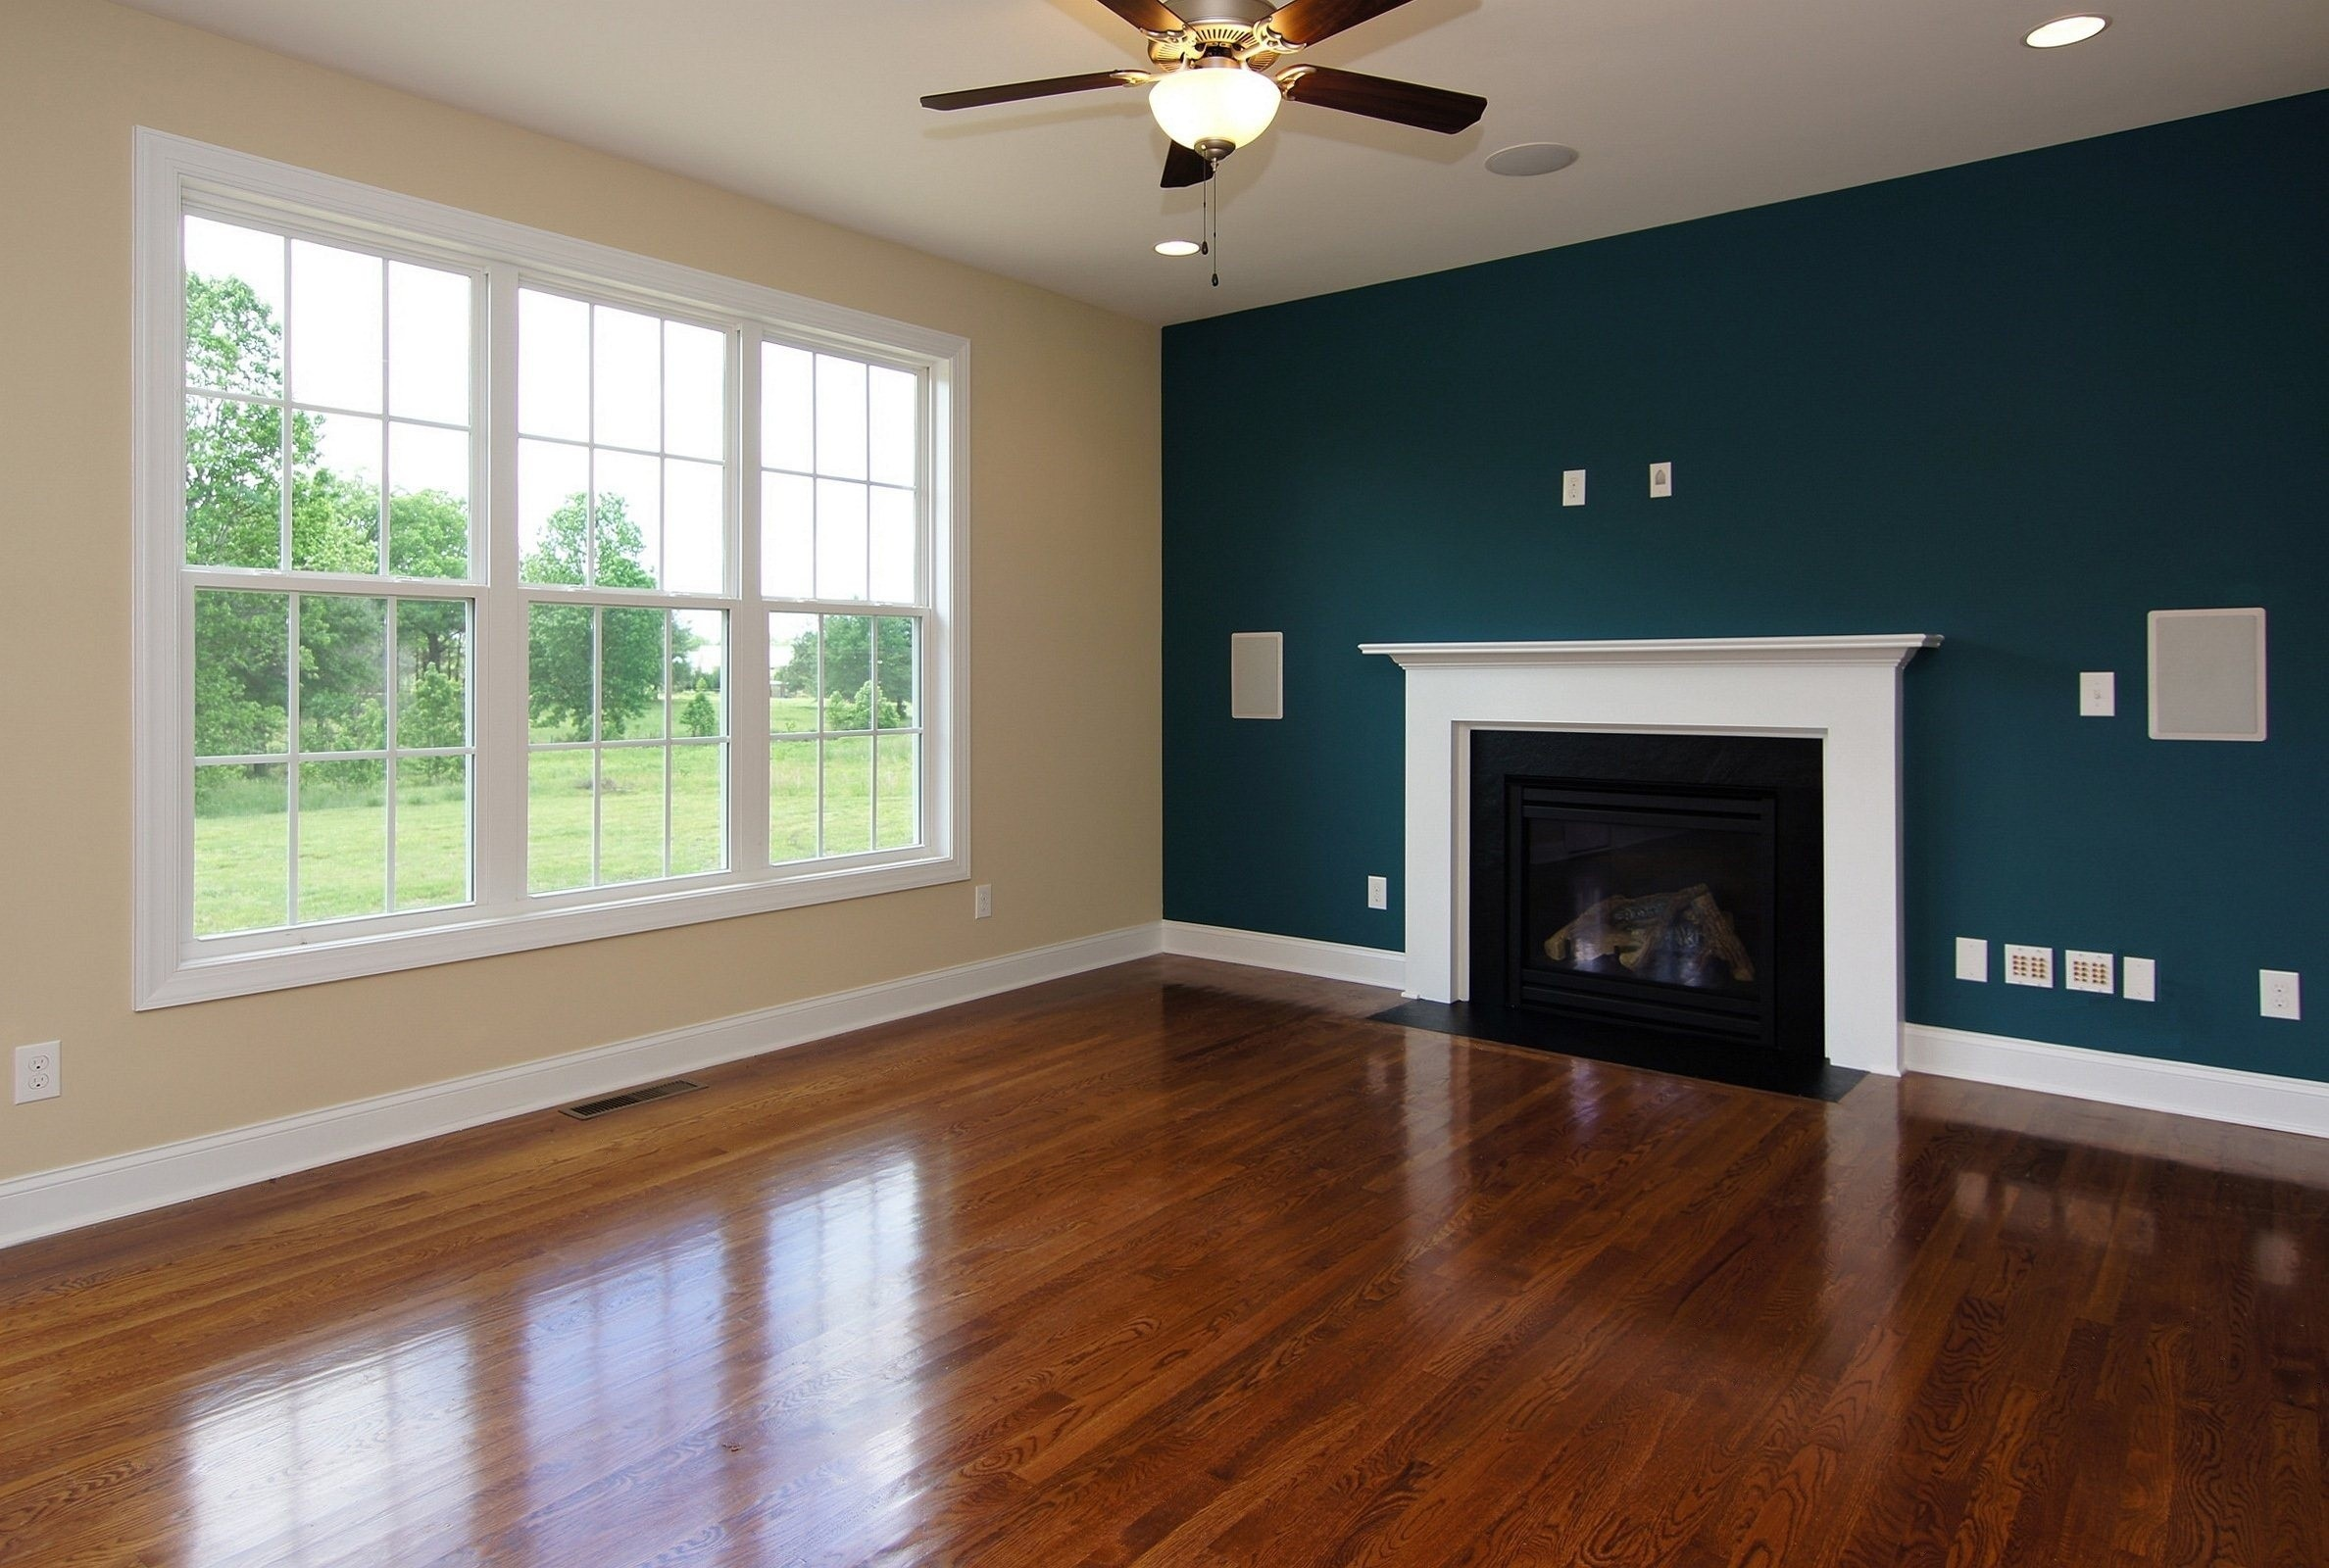 Living Room Family Room Colors 2014 family room color ideas 2014 green bathroom 05 and indigos will show up as main wall colors accent colors